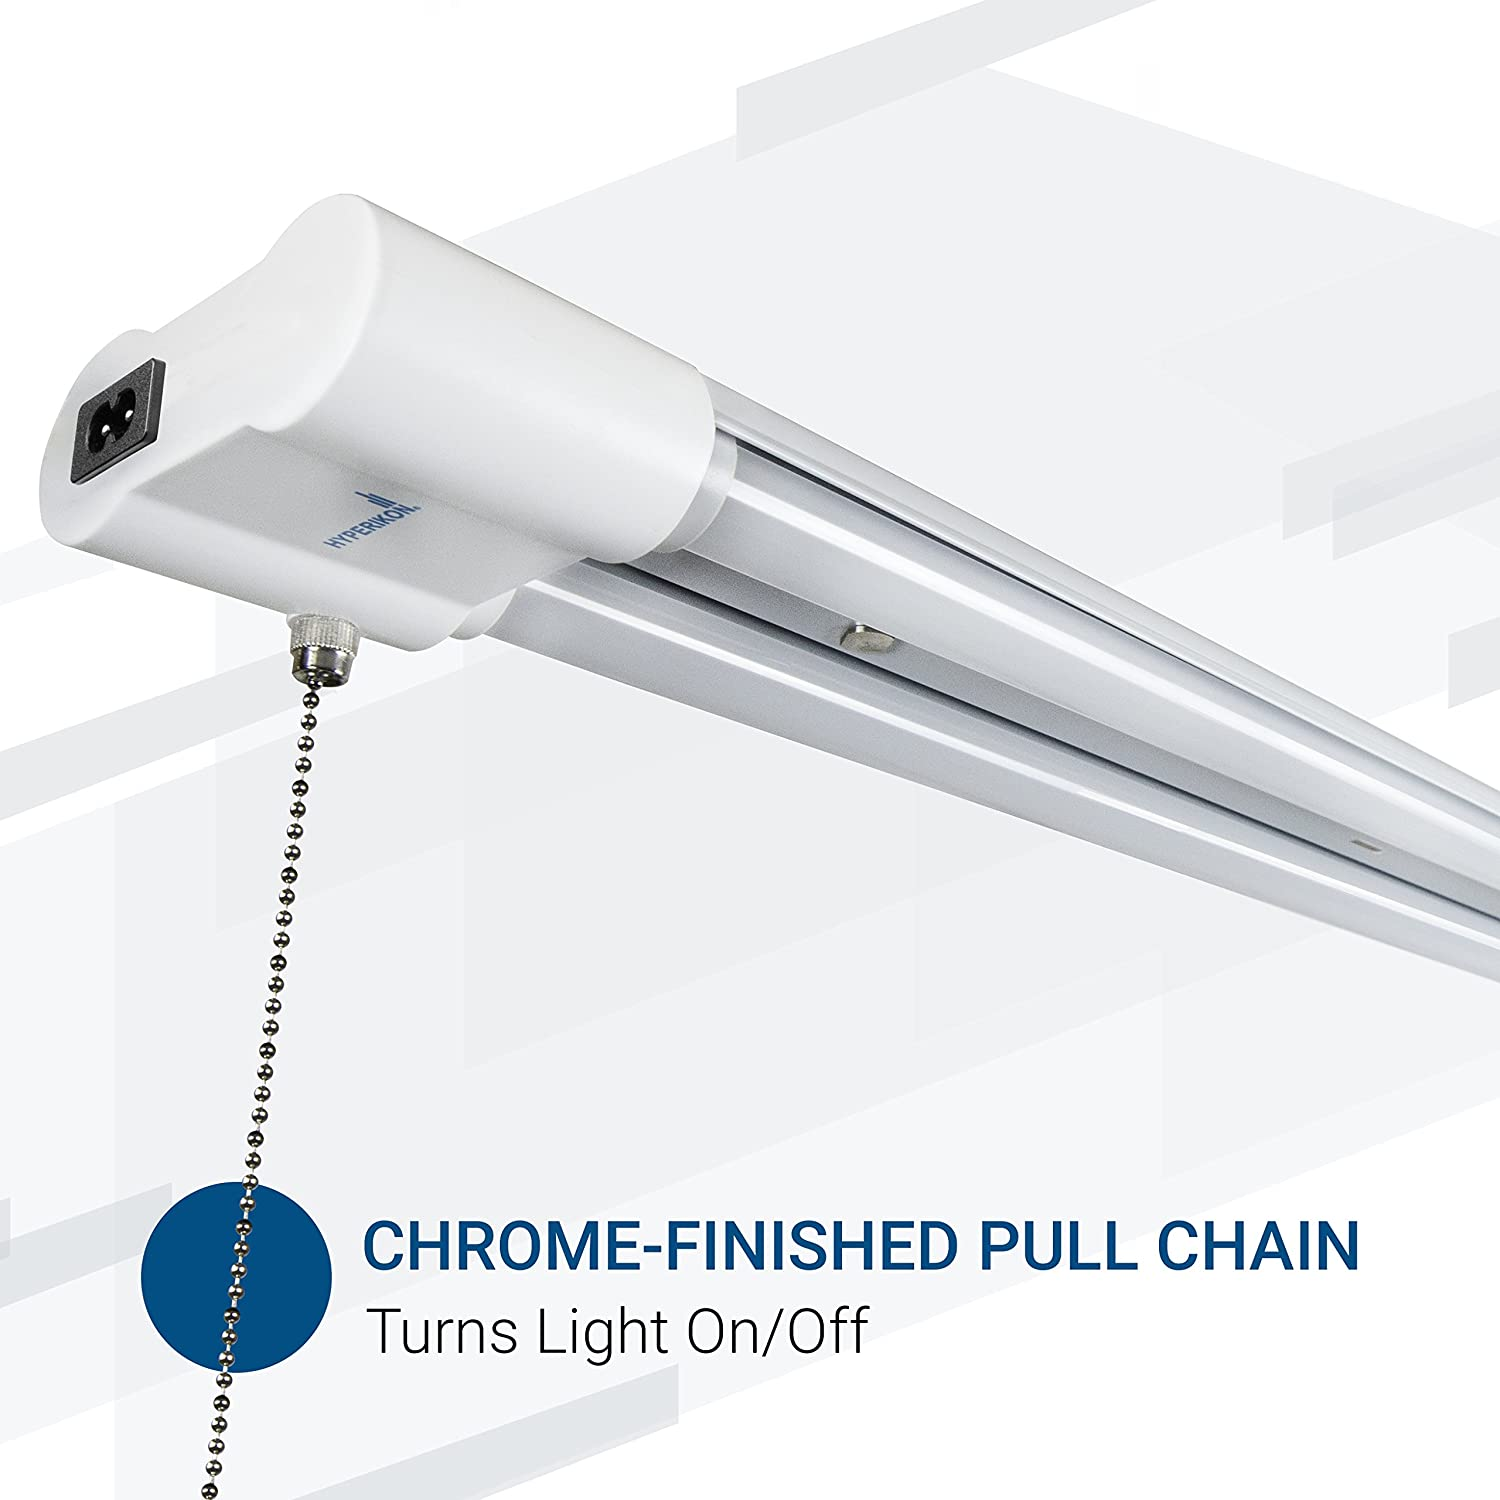 The Hyperikon LED garage lights provide long life, high performance and energy savings in a simple fixture.